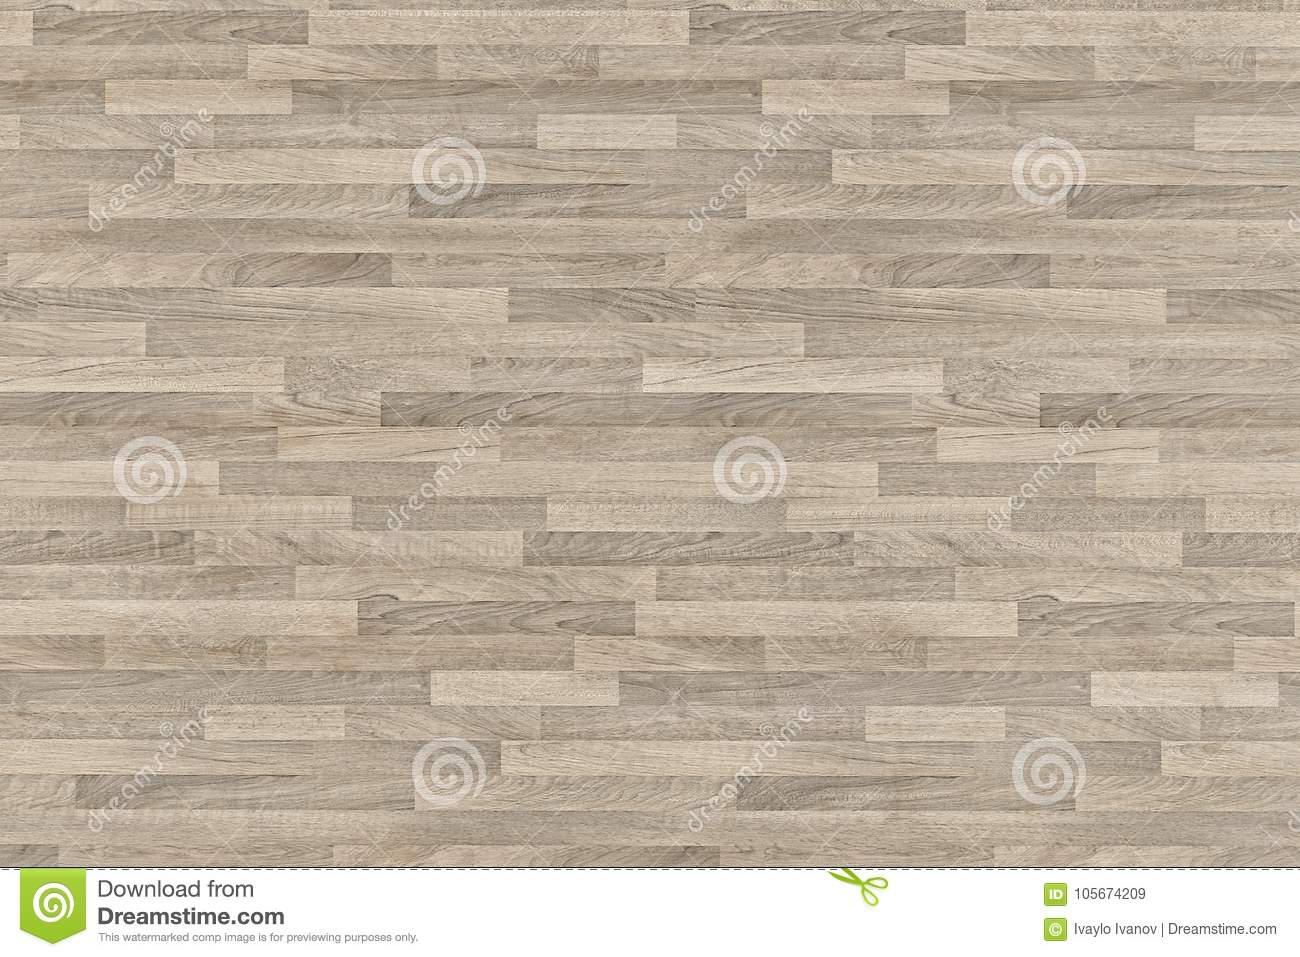 parquet en stratifi fond en bois clair de texture image stock image du fragment conception. Black Bedroom Furniture Sets. Home Design Ideas